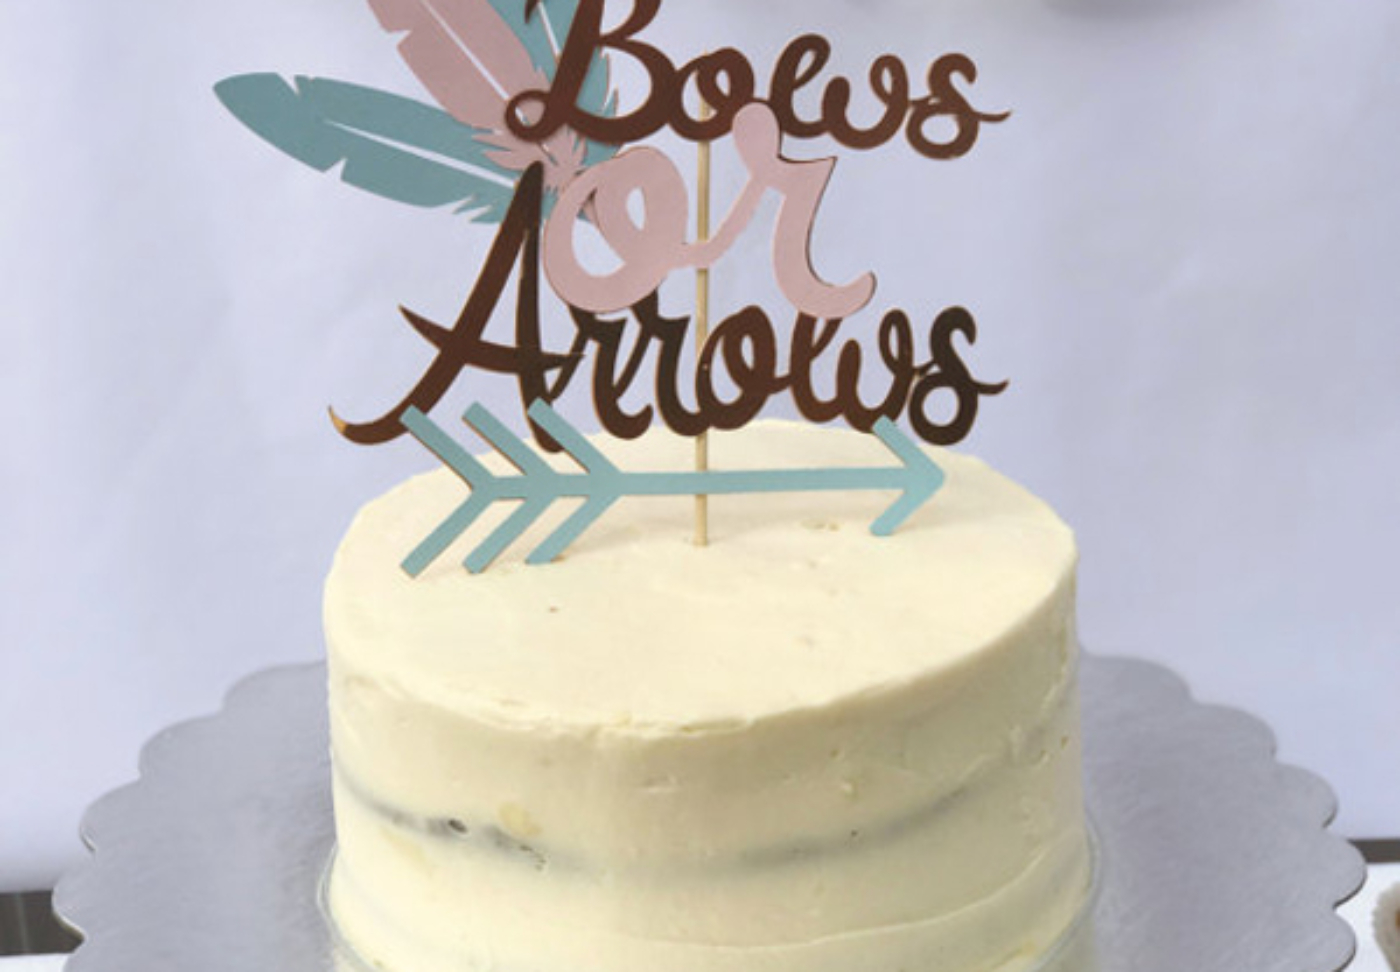 Bows and Arrows Gender Reveal Party Ideas | Halfpint Design - Bows or arrows cake topper is a nice addition to a gender reveal party.